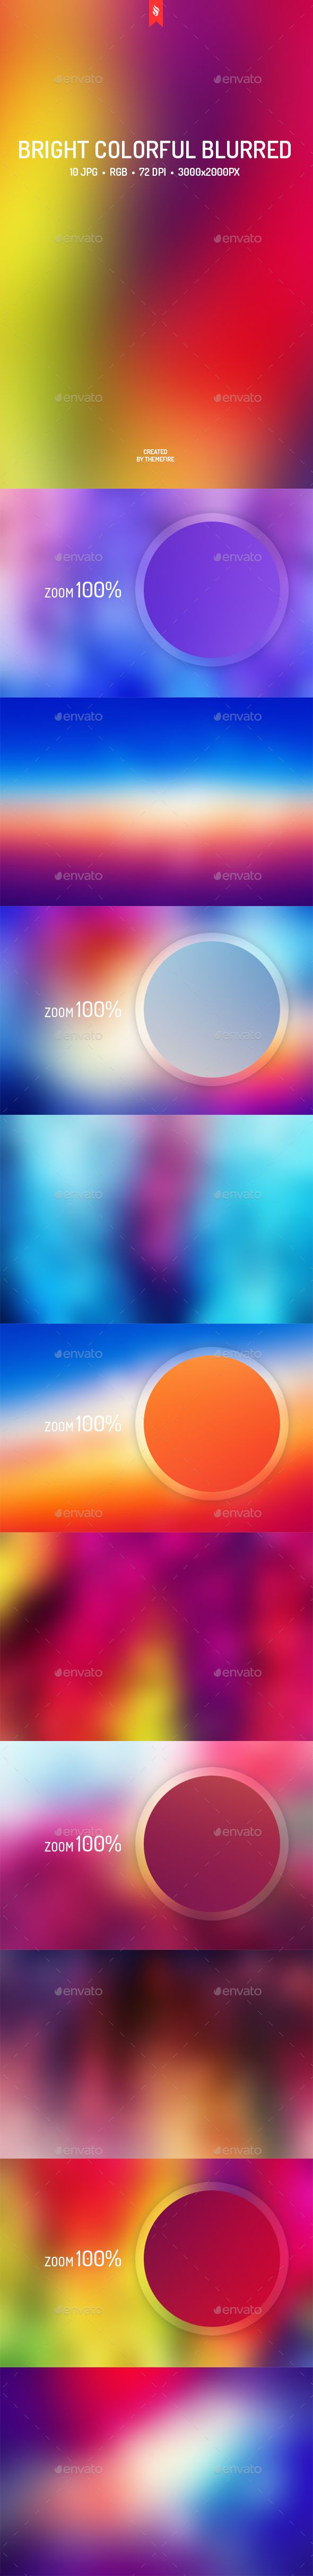 Bright Colorful Blurred Backgrounds - Download…